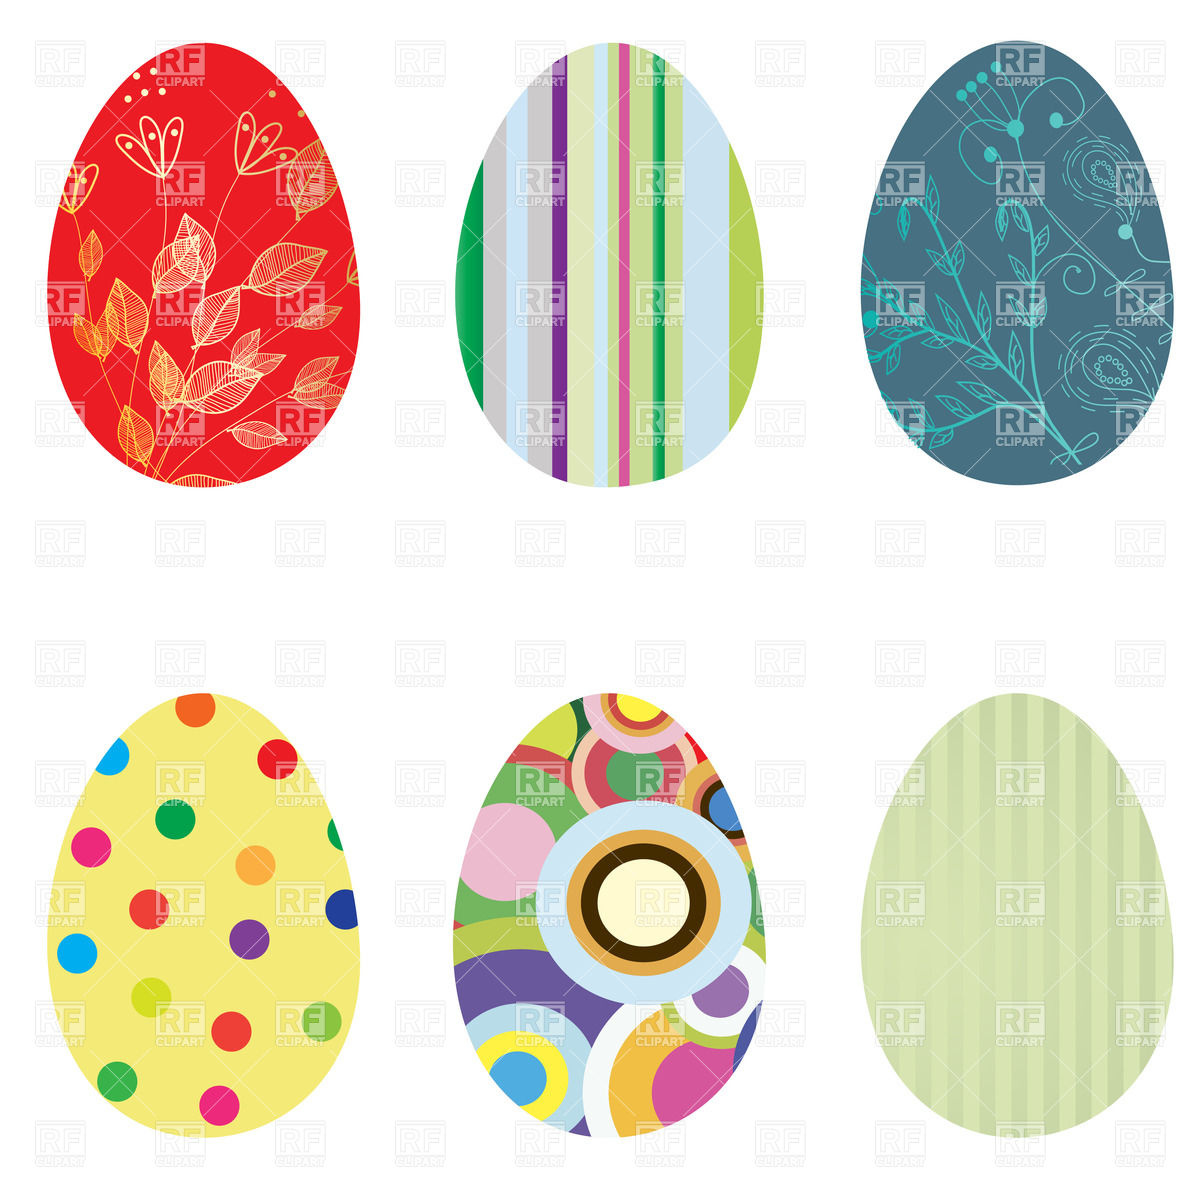 Ornate Easter eggs with motley patterns Vector Image #24450.